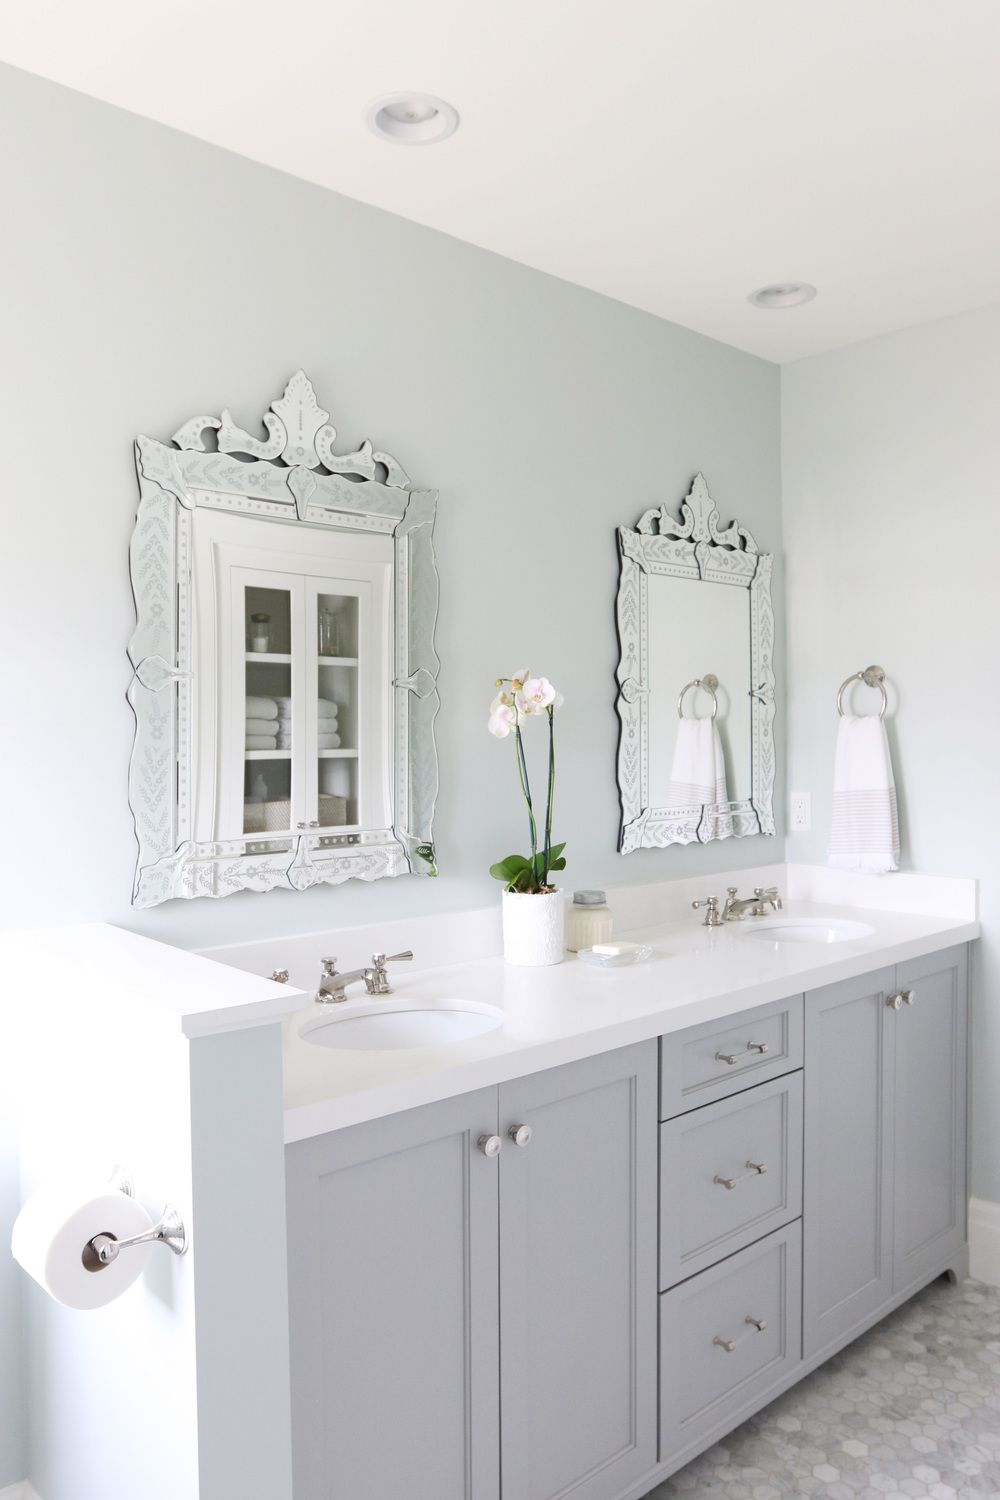 The midway house guest bathroom coventry gray coventry and gray cabinets Bathroom cabinets gray